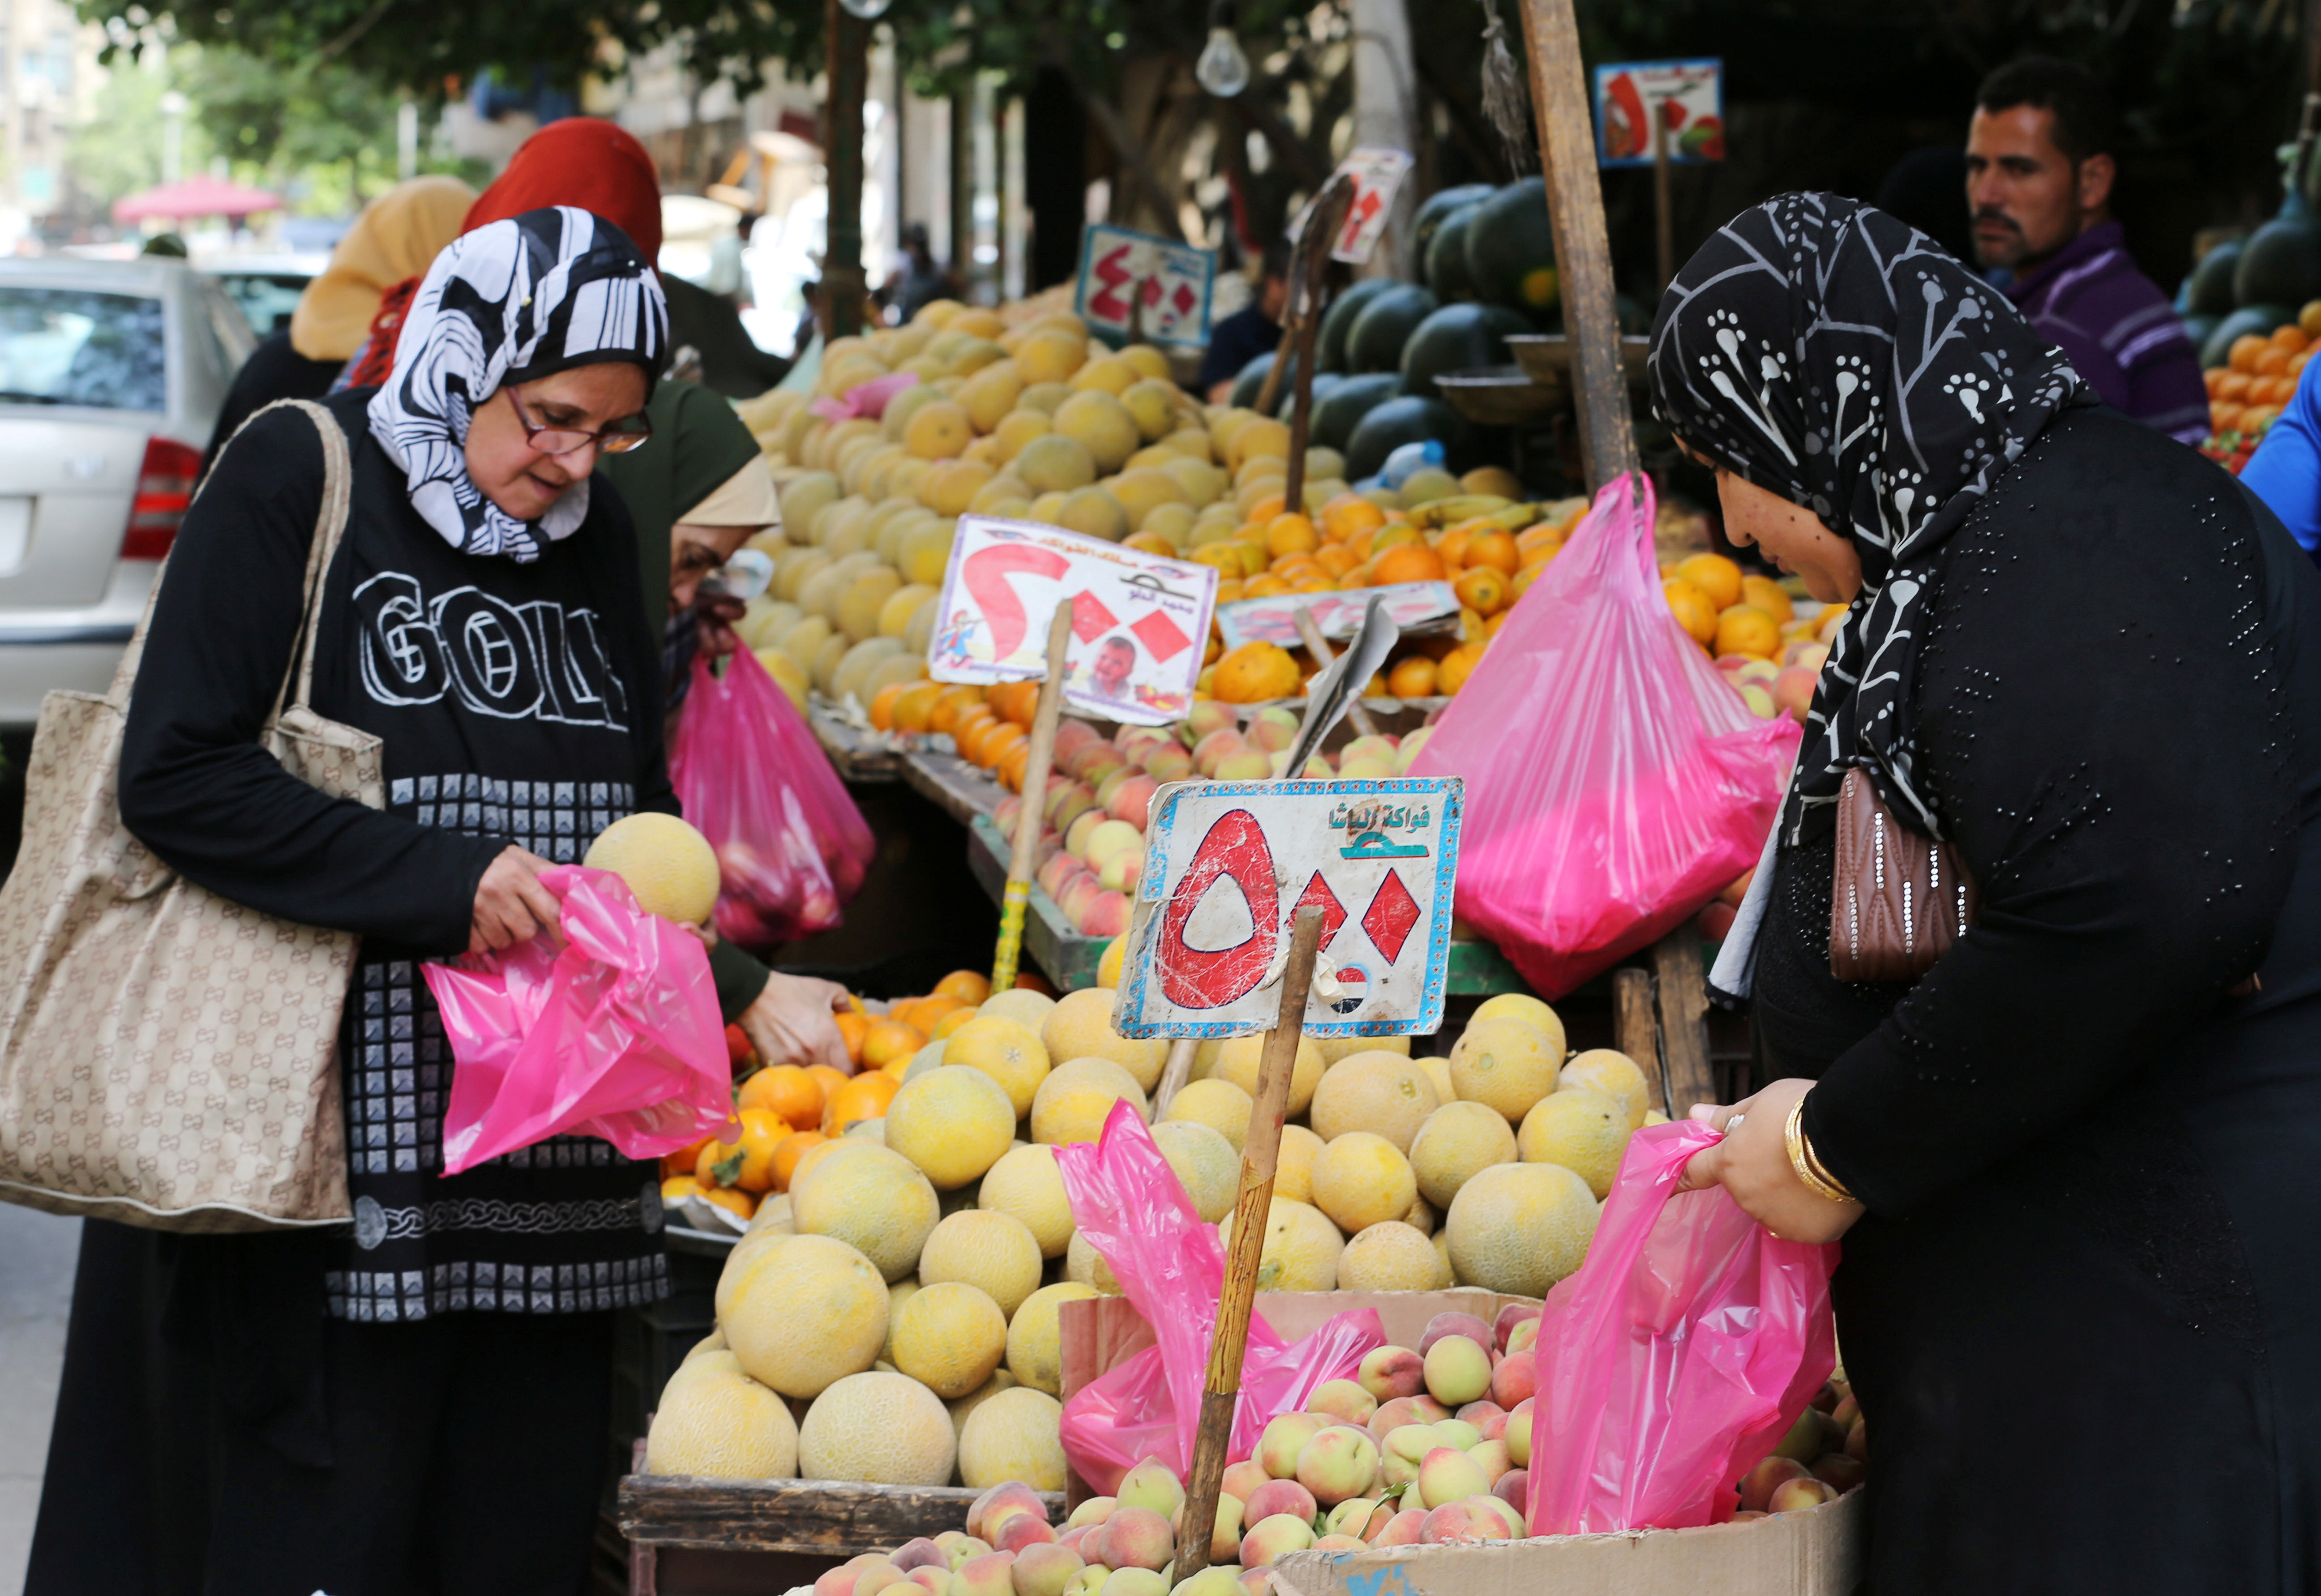 Egyptian women shop at a vegetable market in Cairo, Egypt May 10, 2016. REUTERS/Mohamed Abd El Ghany - RTX2DMZ3